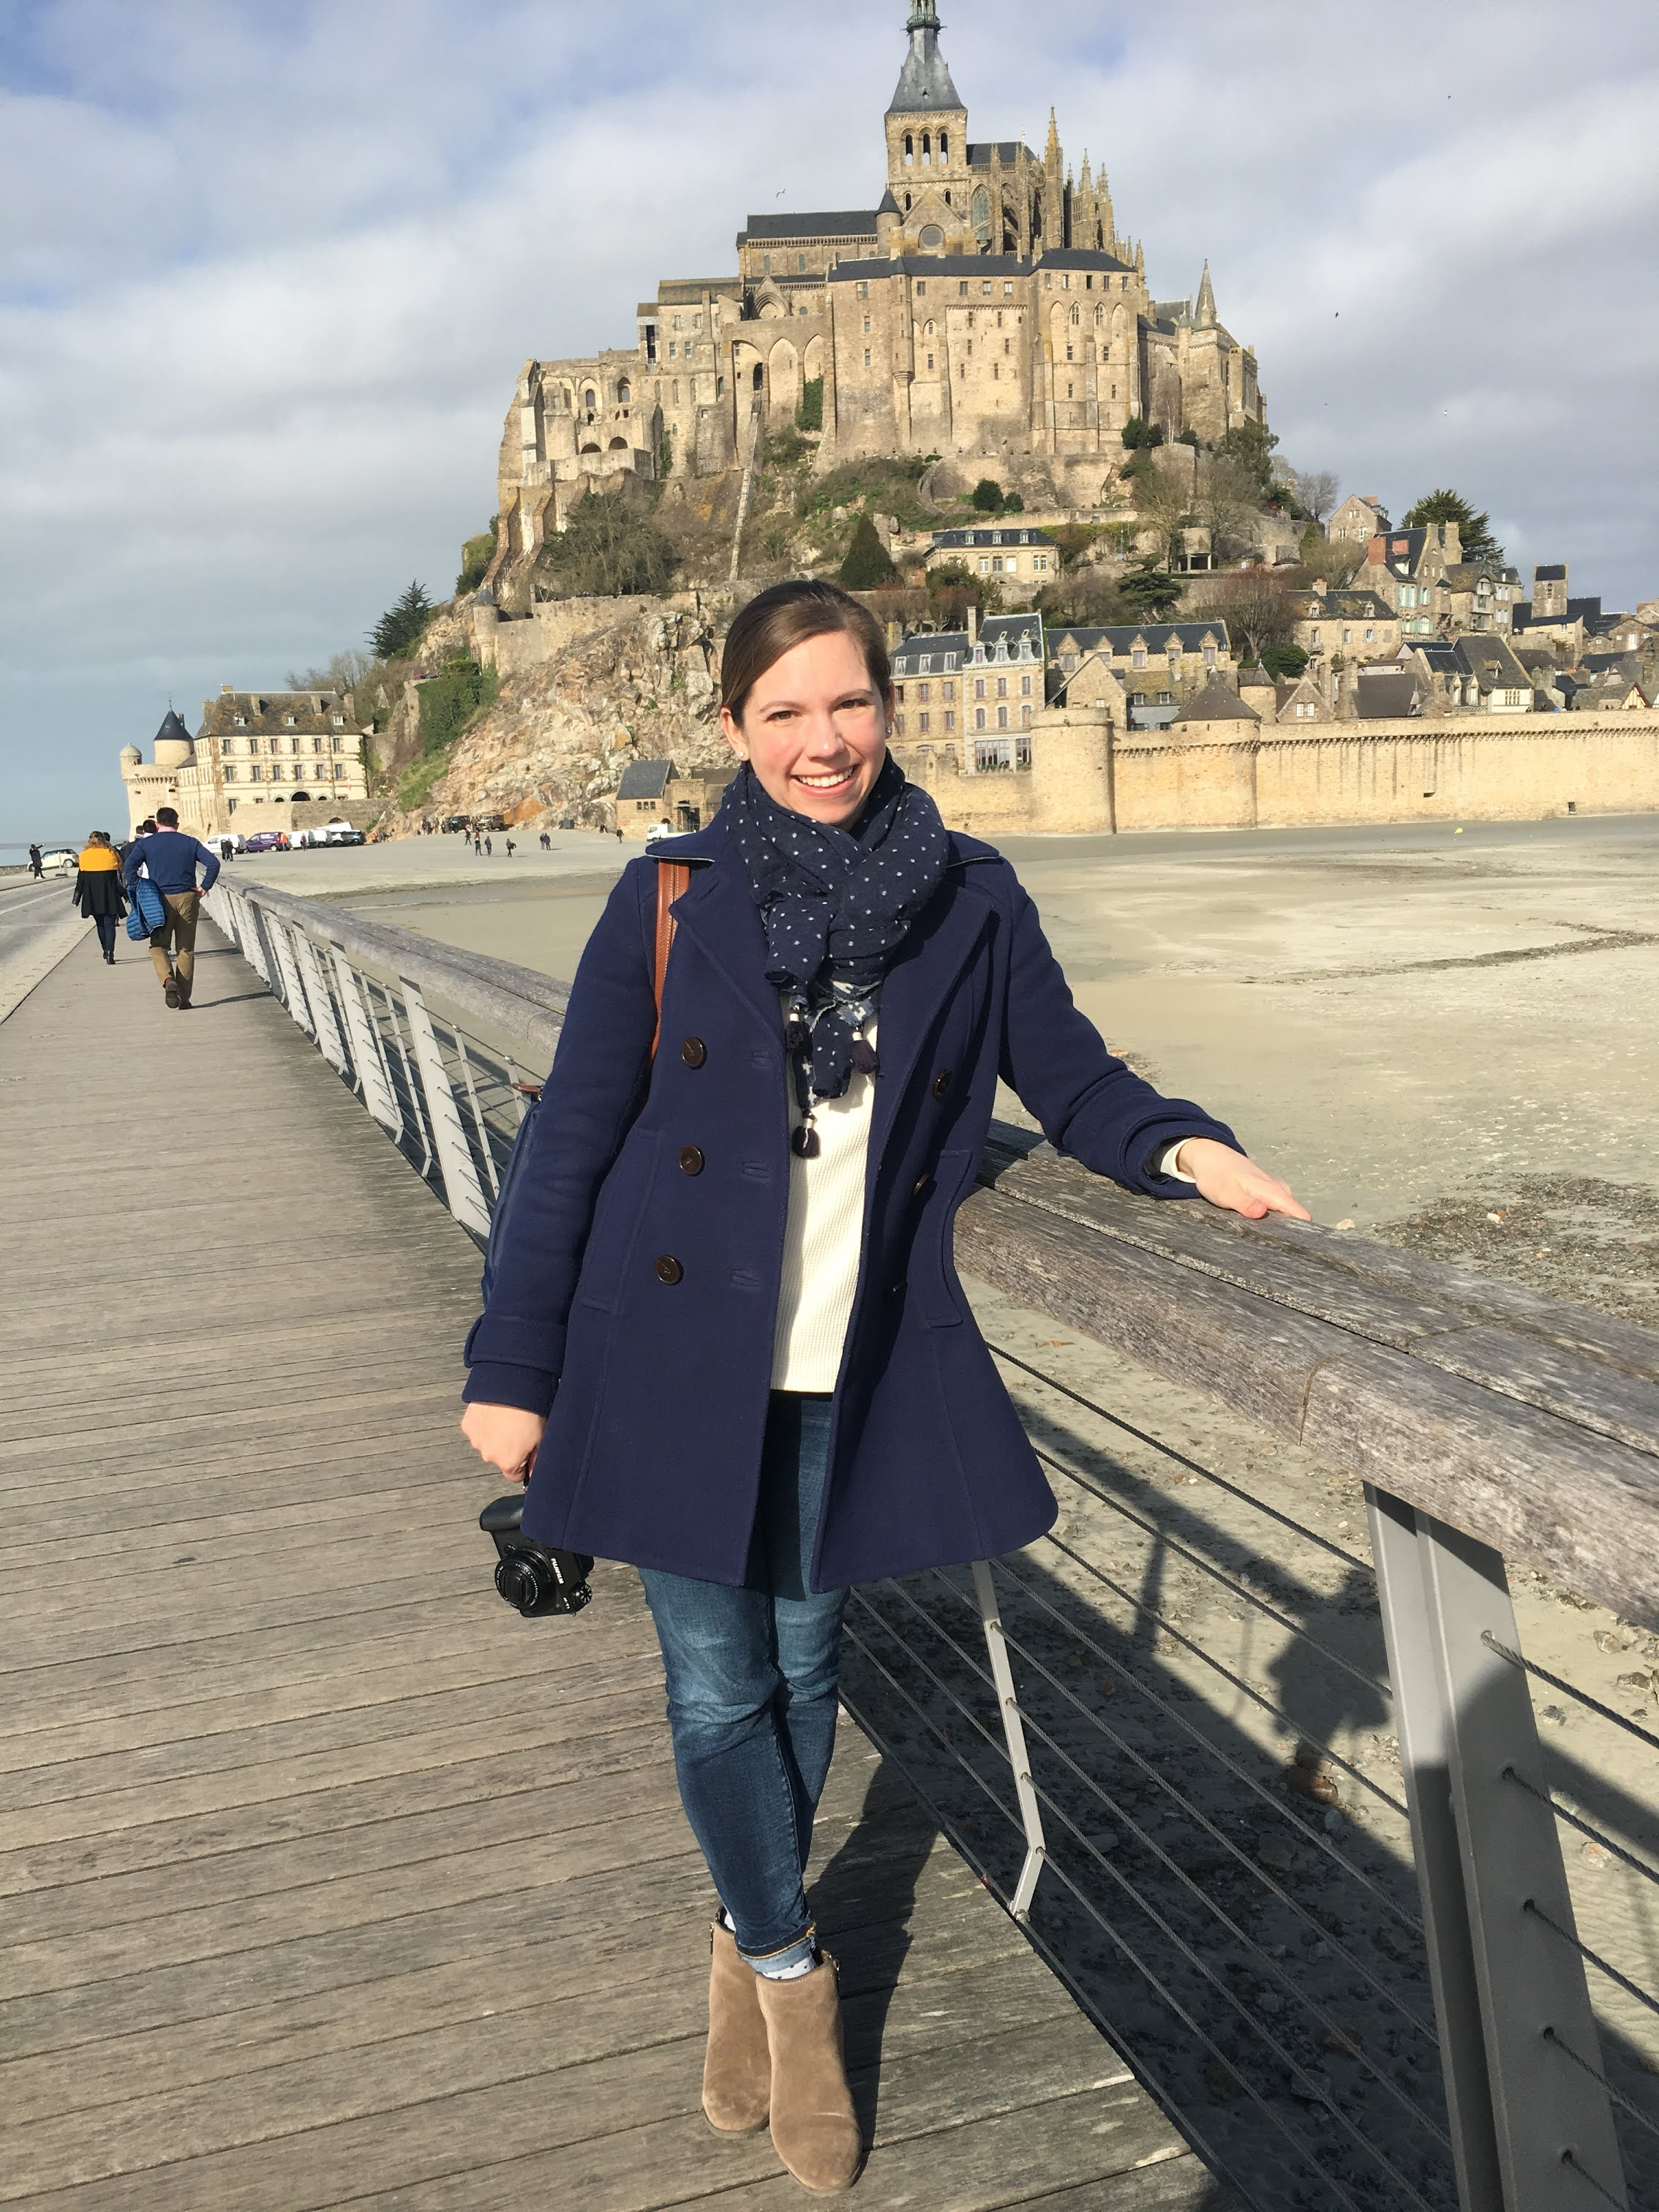 Photo of me taken by a kind English man who had visited Mont Saint Michel numerous times, and was so excited for me and my first visit.